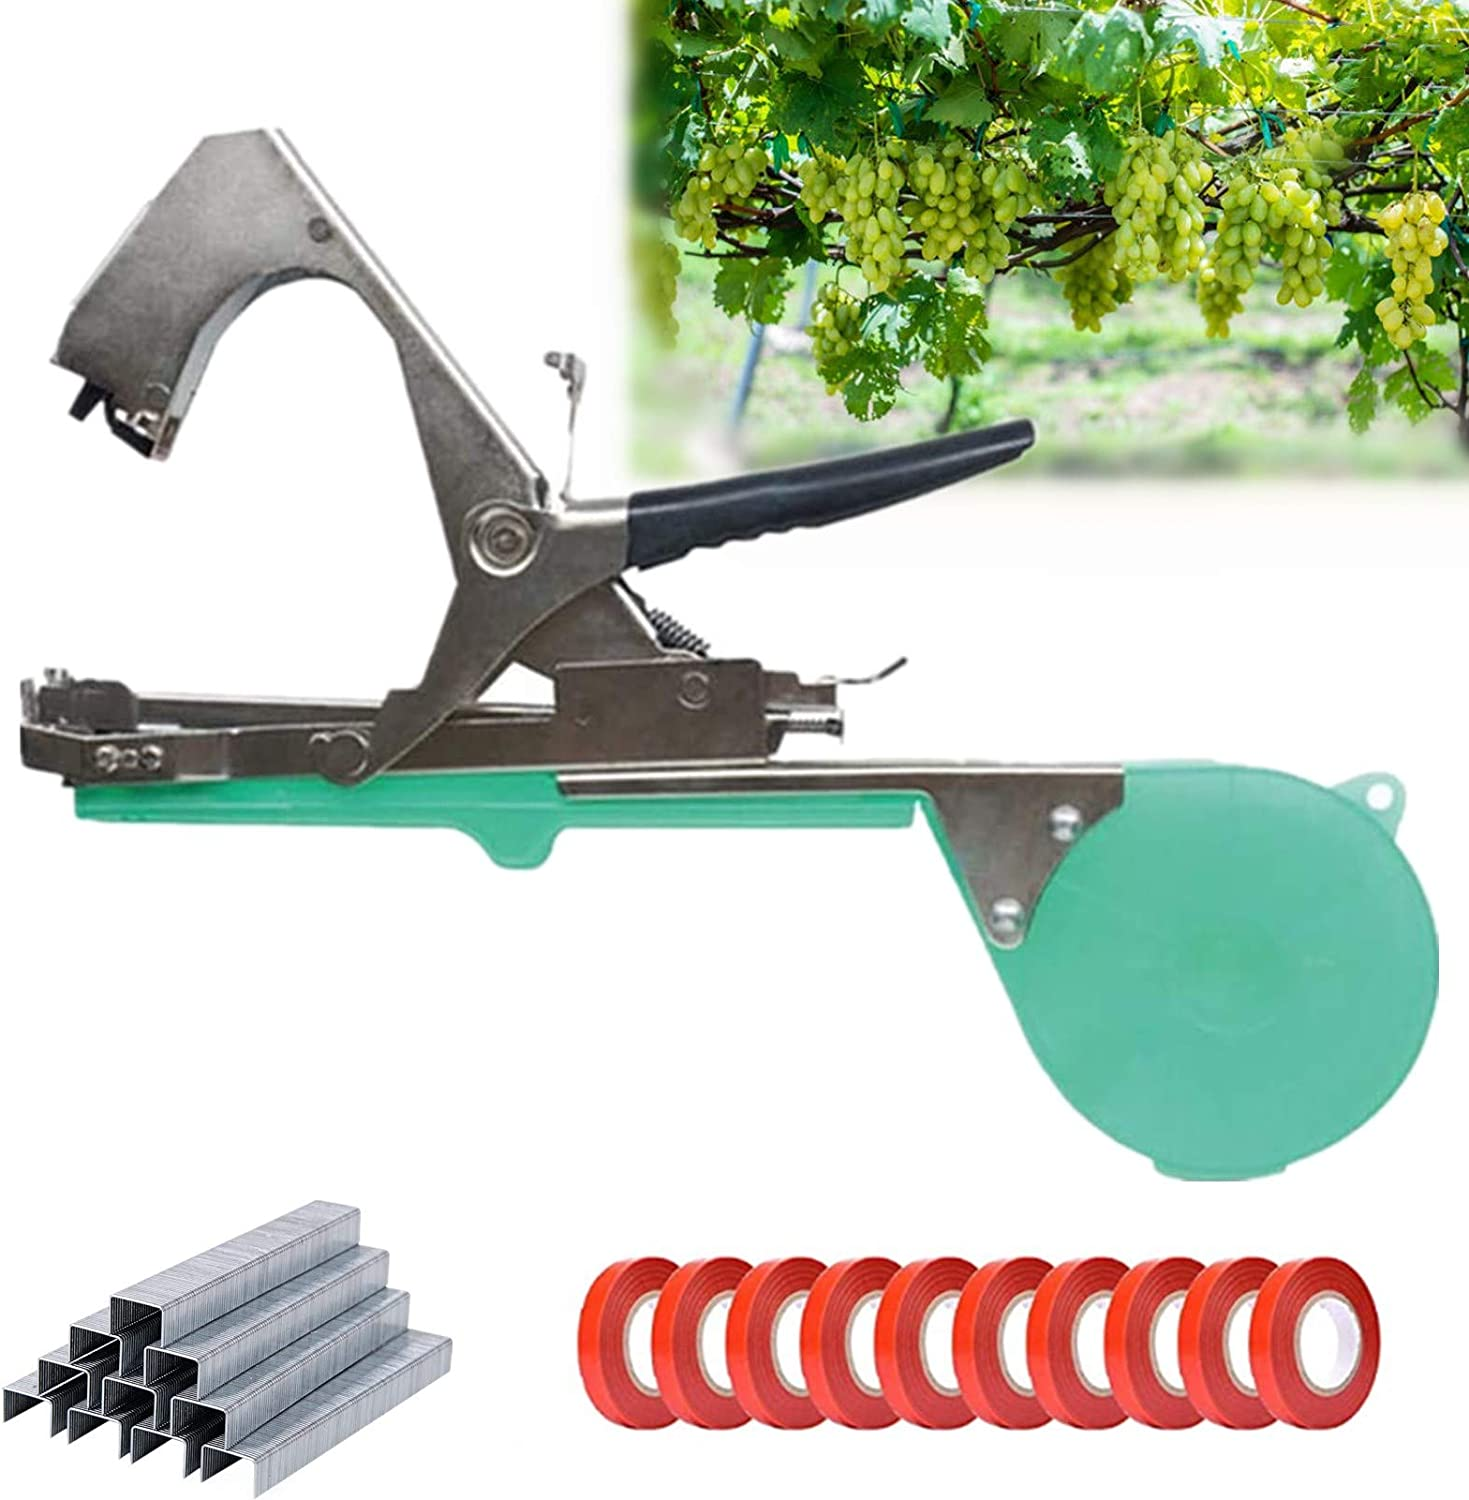 cdbz Plant Tying Machine,Hand Plant Tying Machine Agriculture Tool,Garden Plant Tool for Vineyard,Vine Tying Tape Plant Agriculture Tapetool Tapener with 10 Rolls Tape and a Box of Staples Set